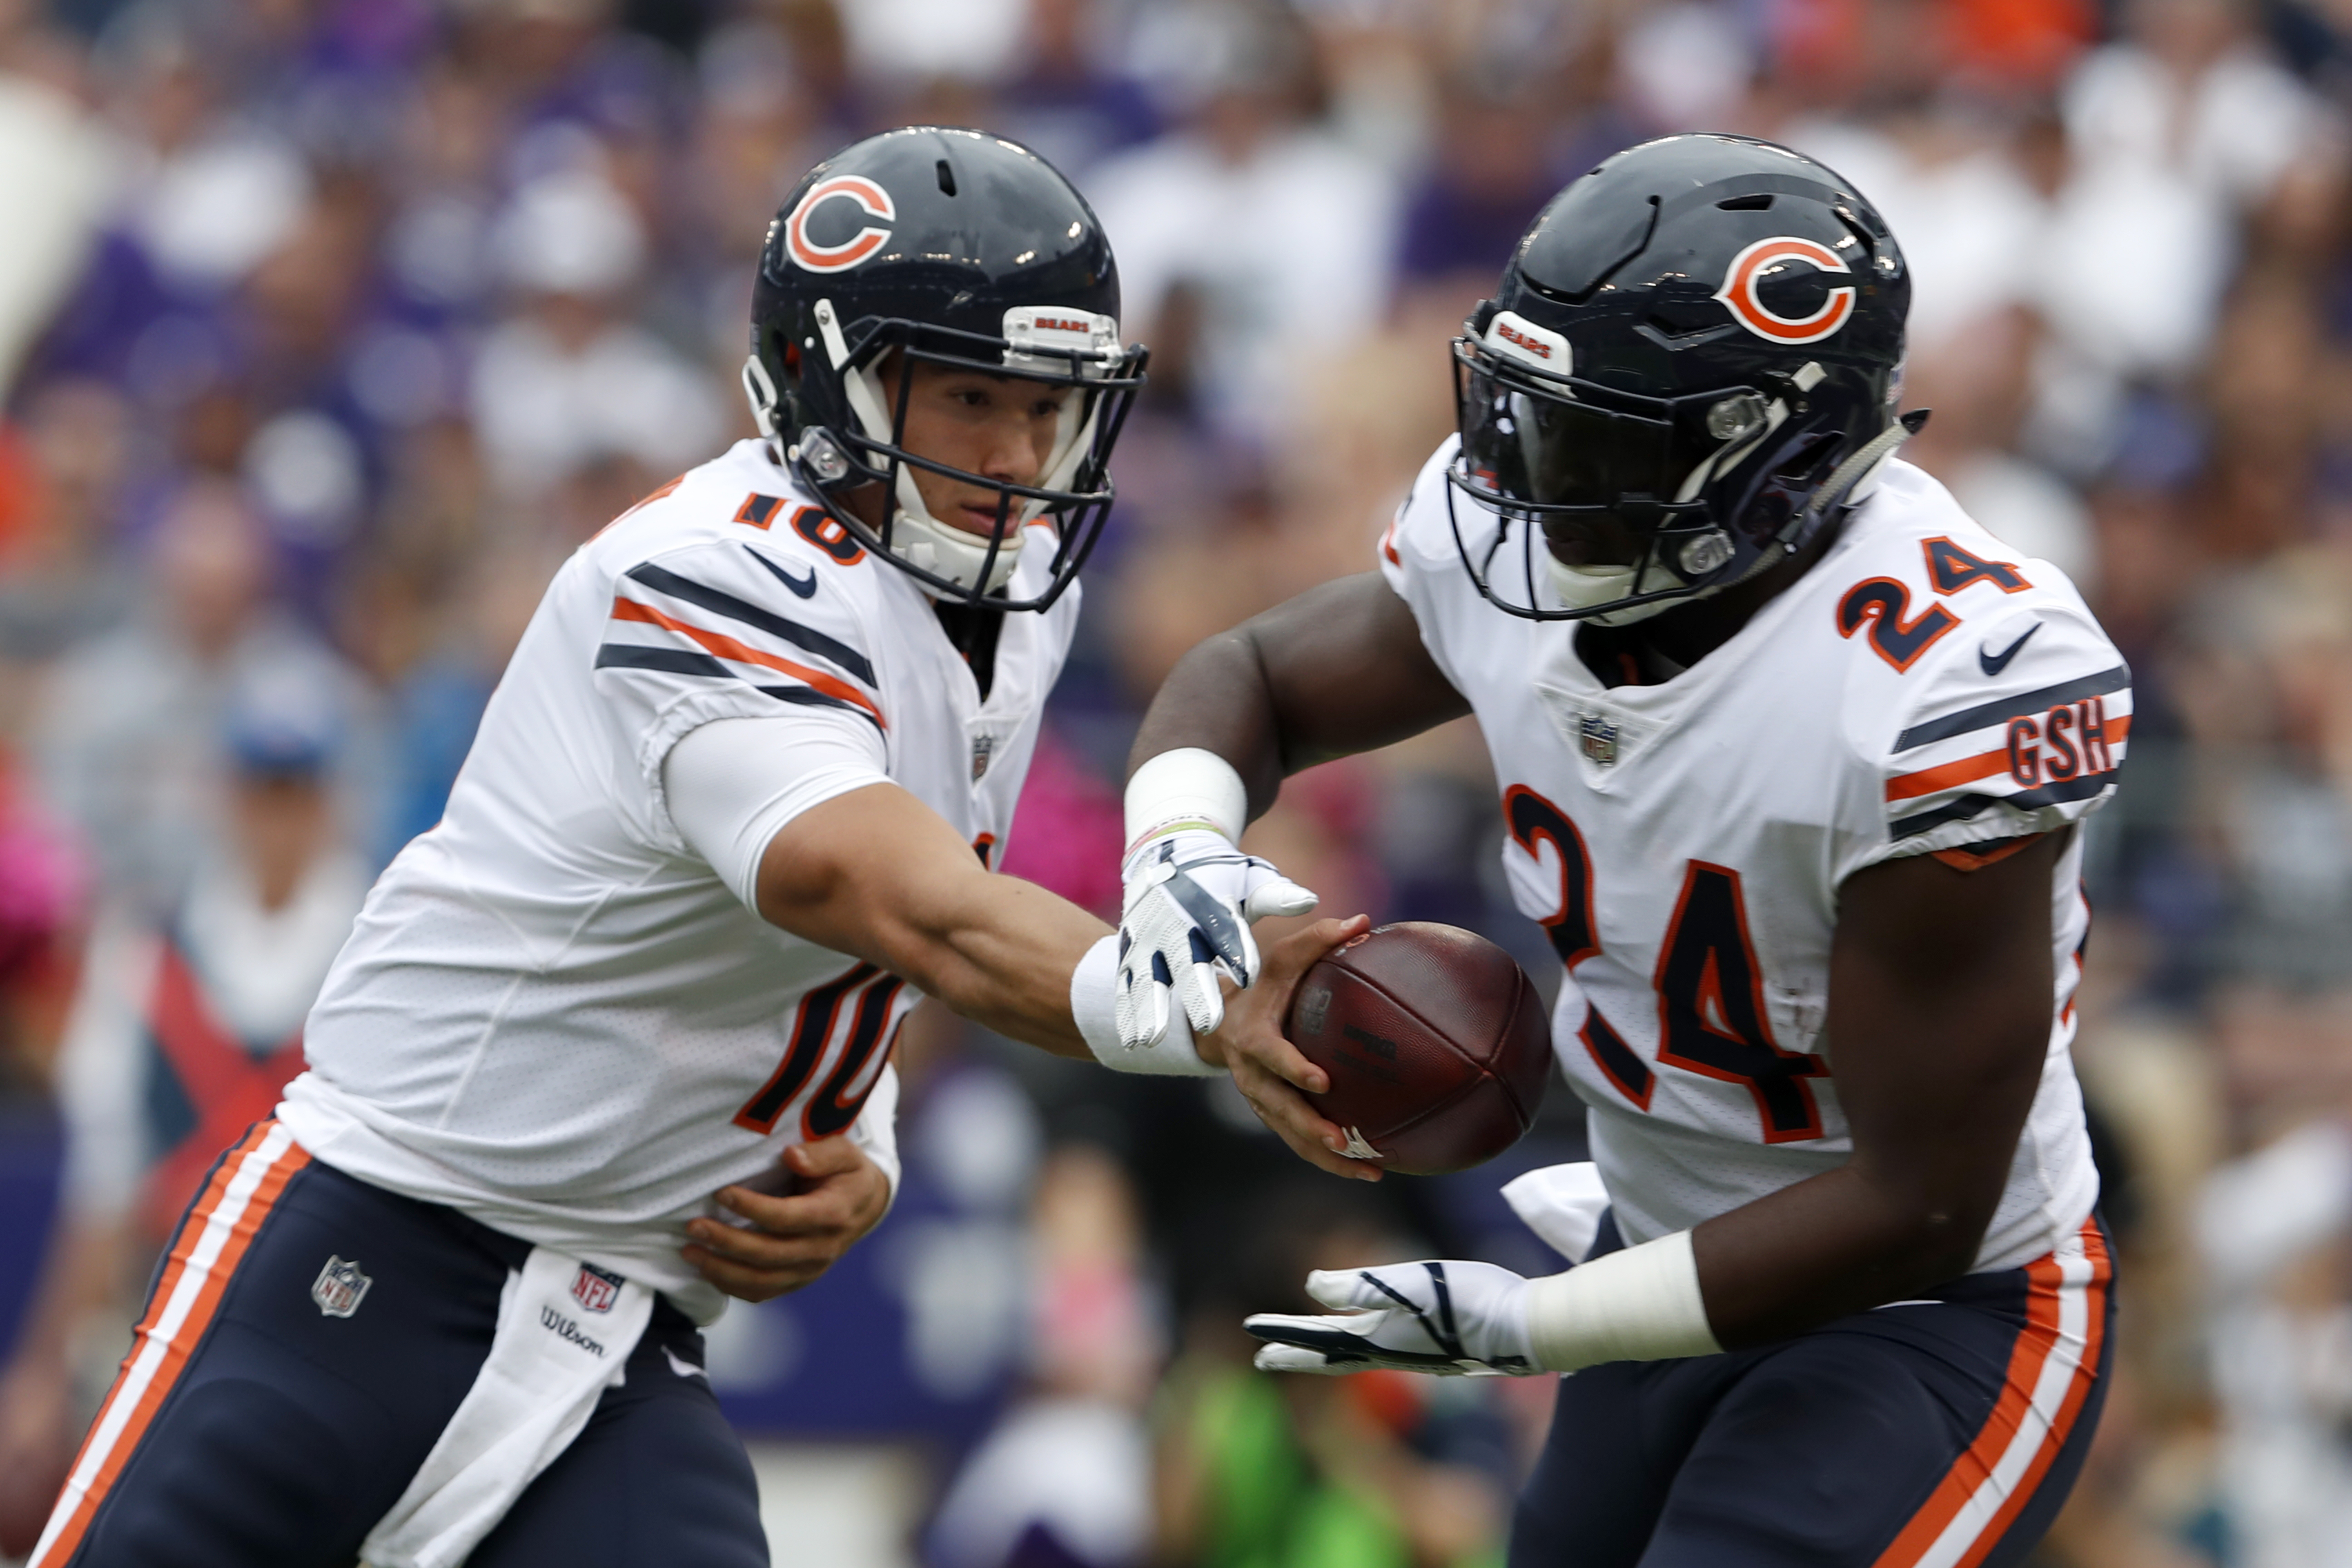 Game Recap: Bears defense dominant in win over Panthers